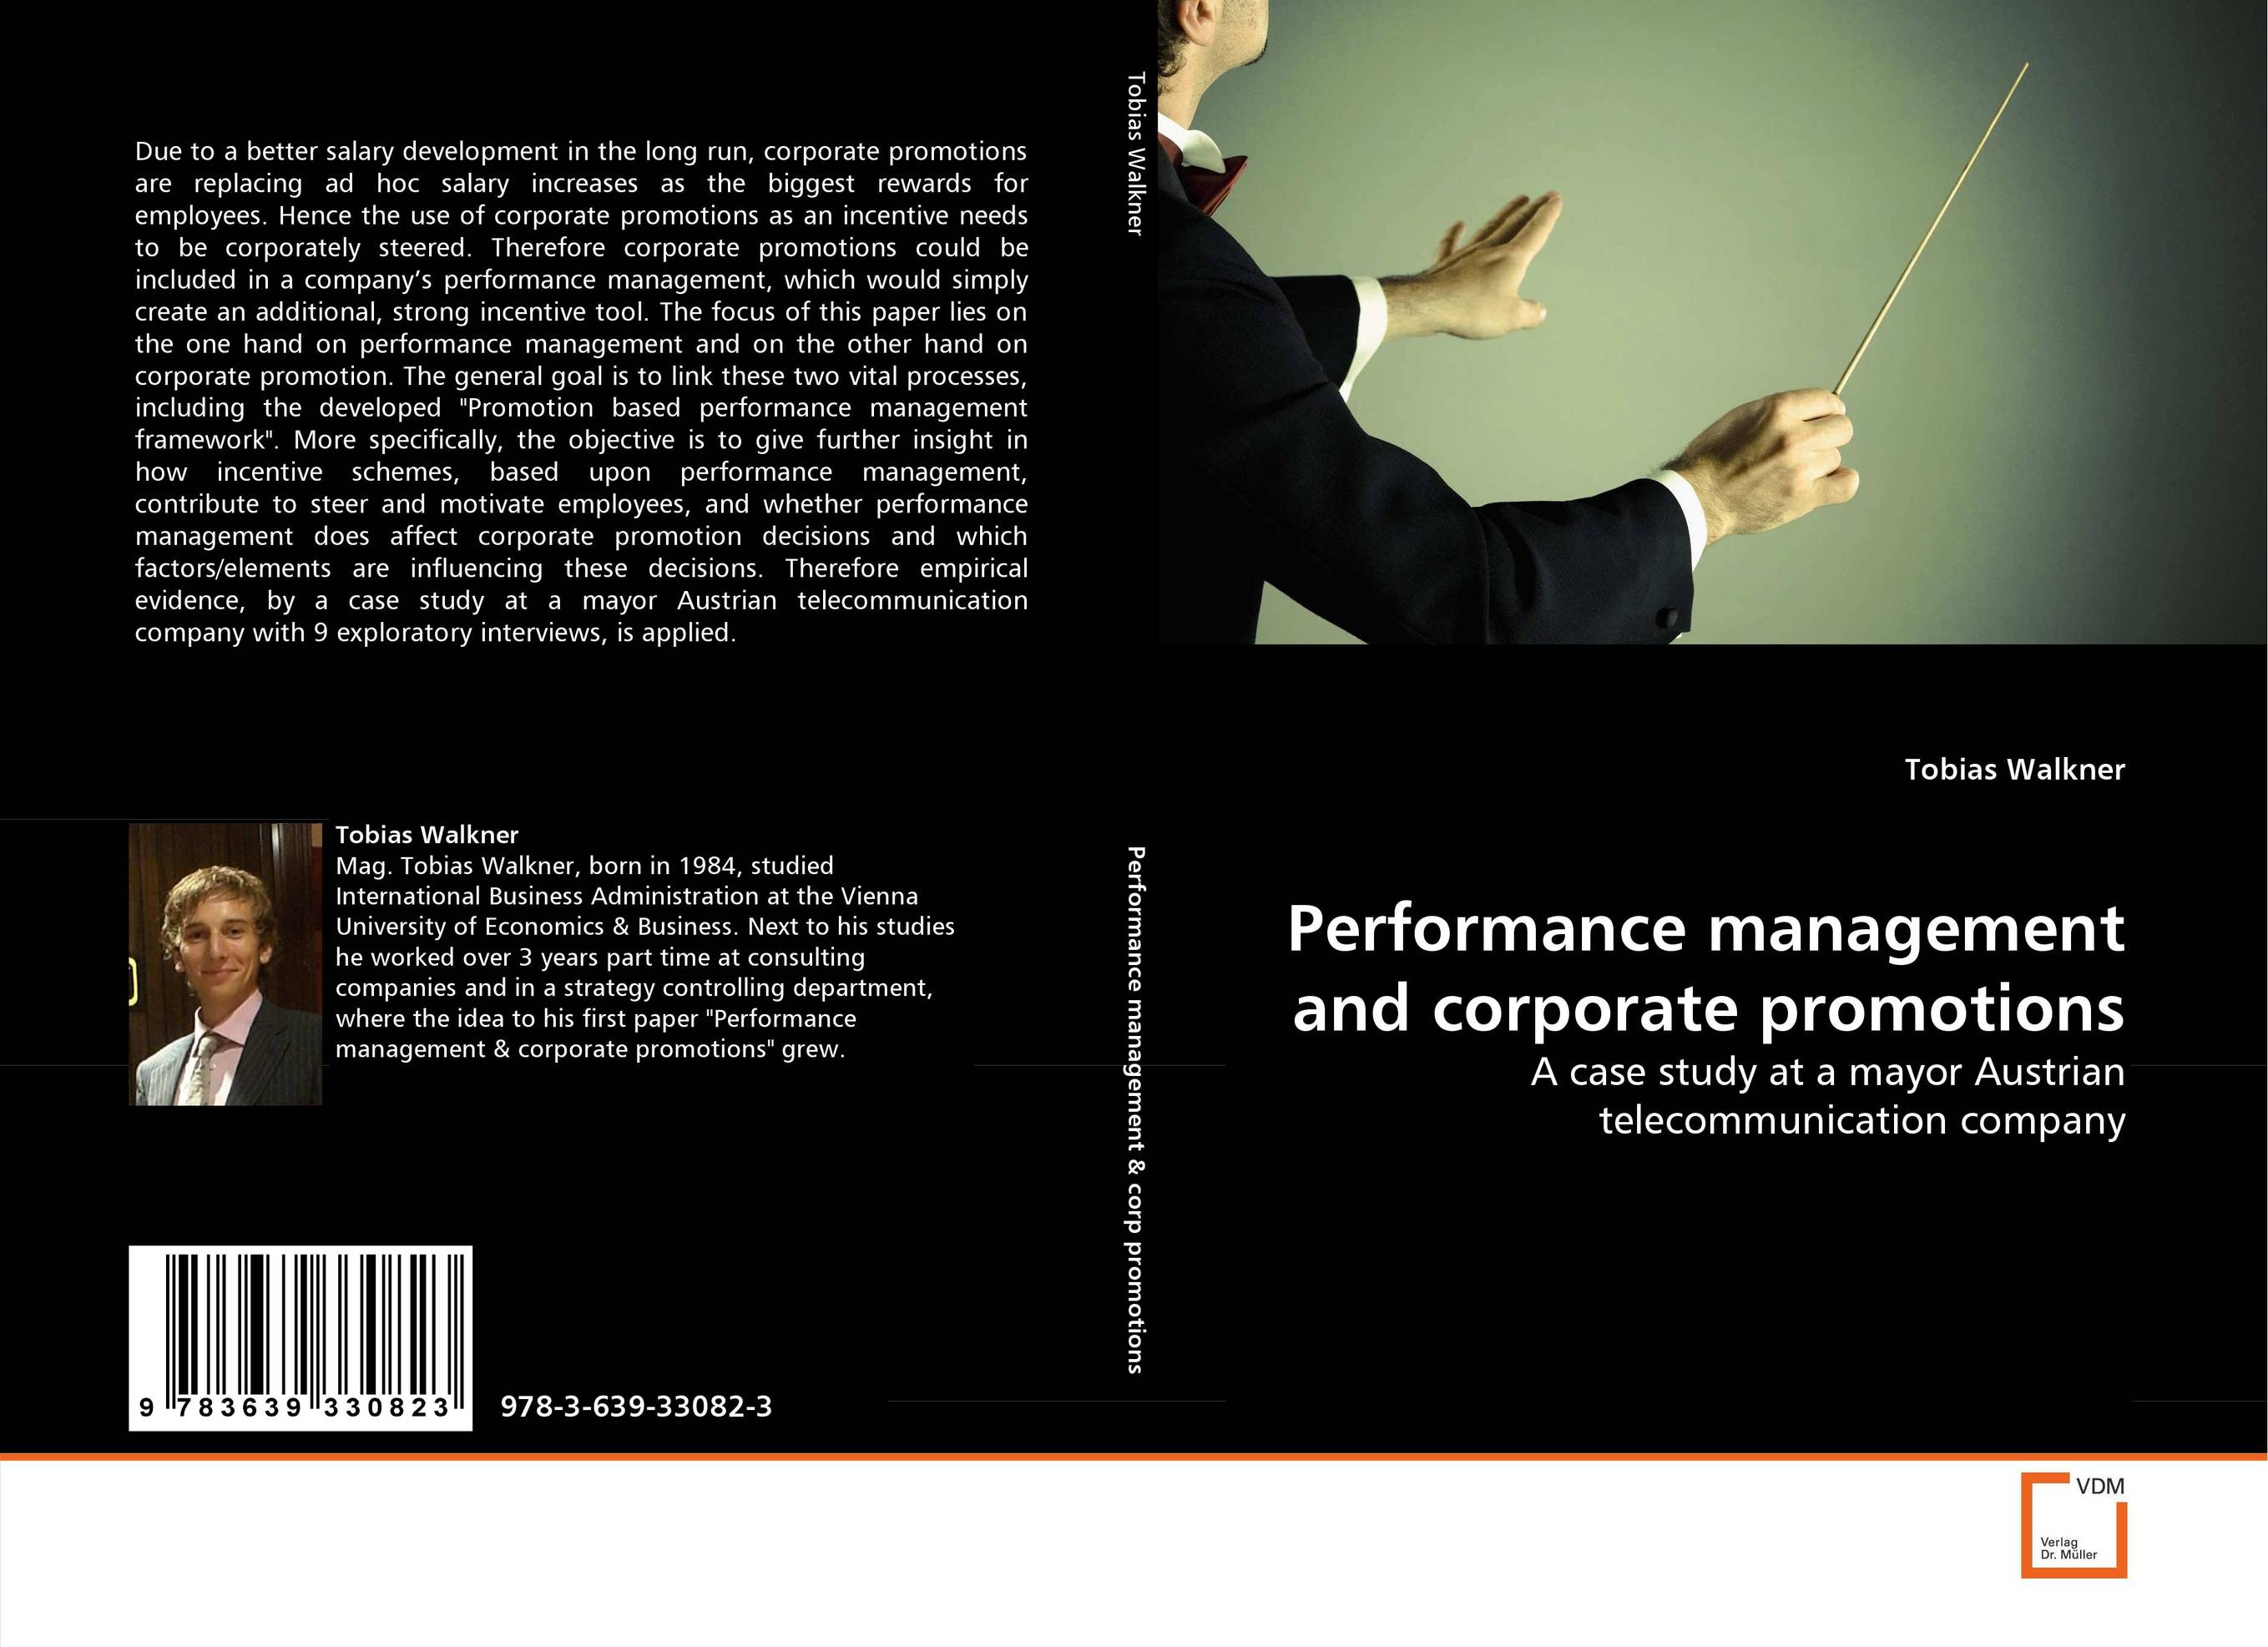 Performance management and corporate promotions corporate governance and firm value